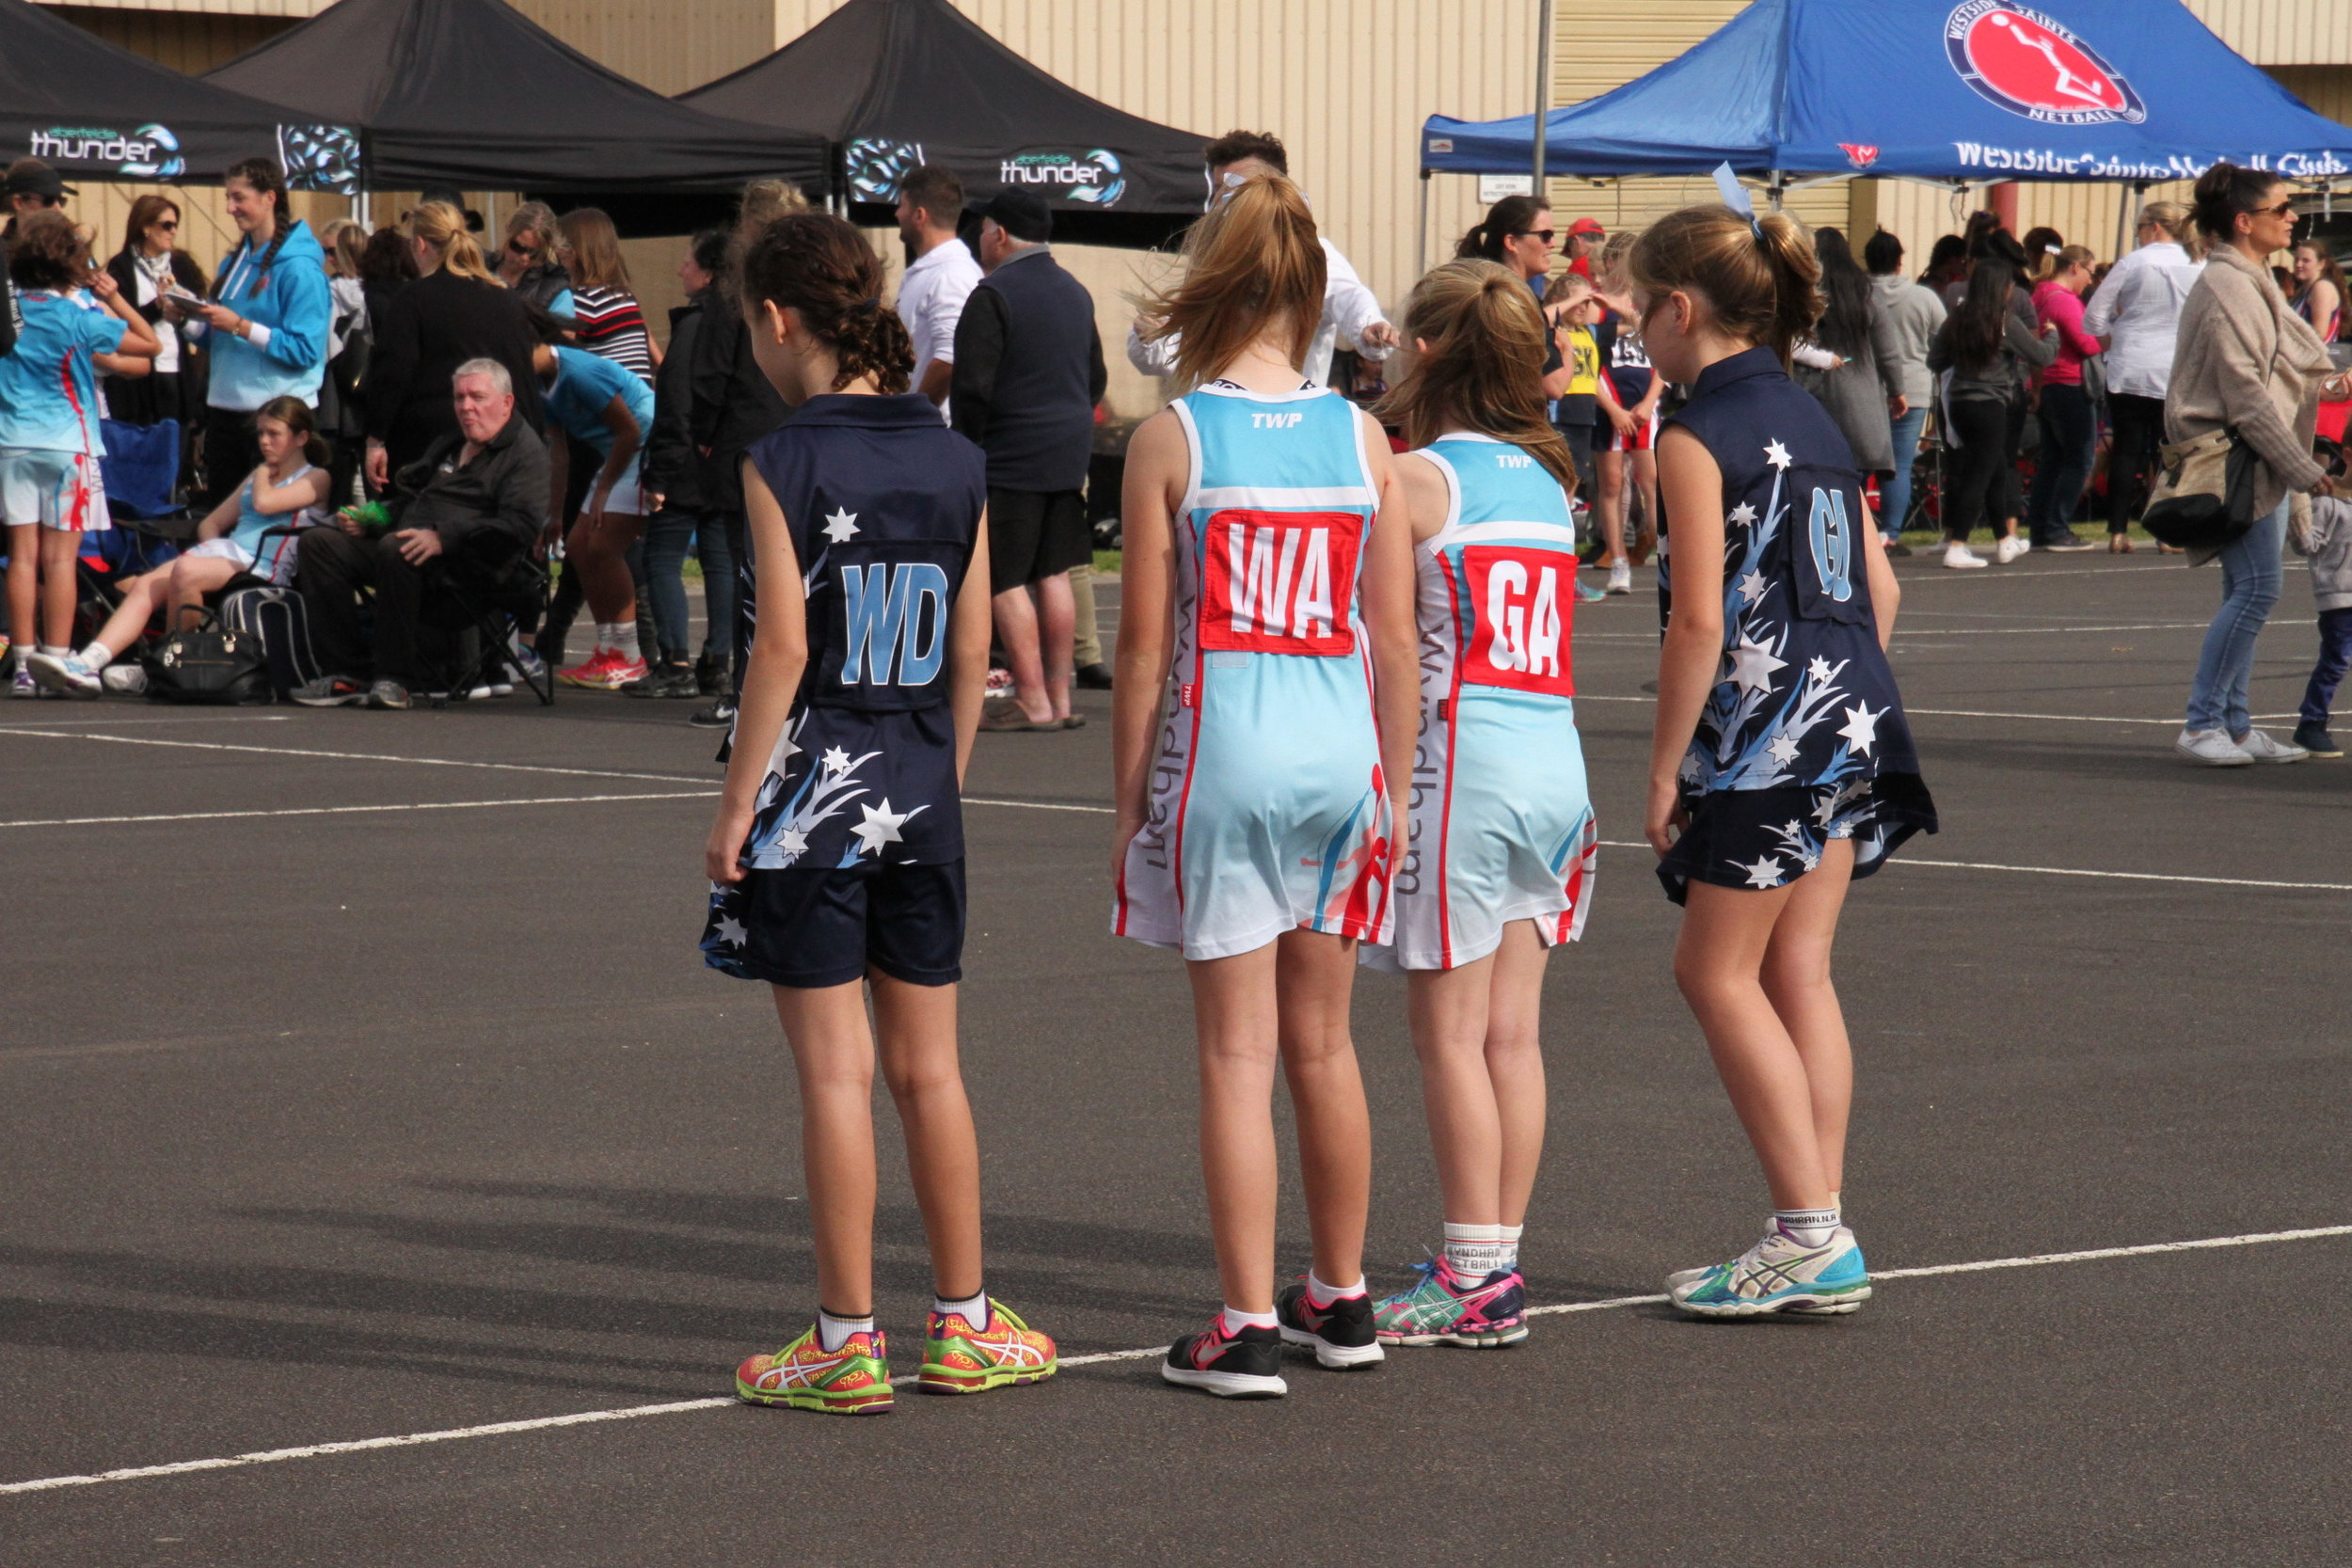 2016-05-22 Dandenong Netball Tournament 001.JPG